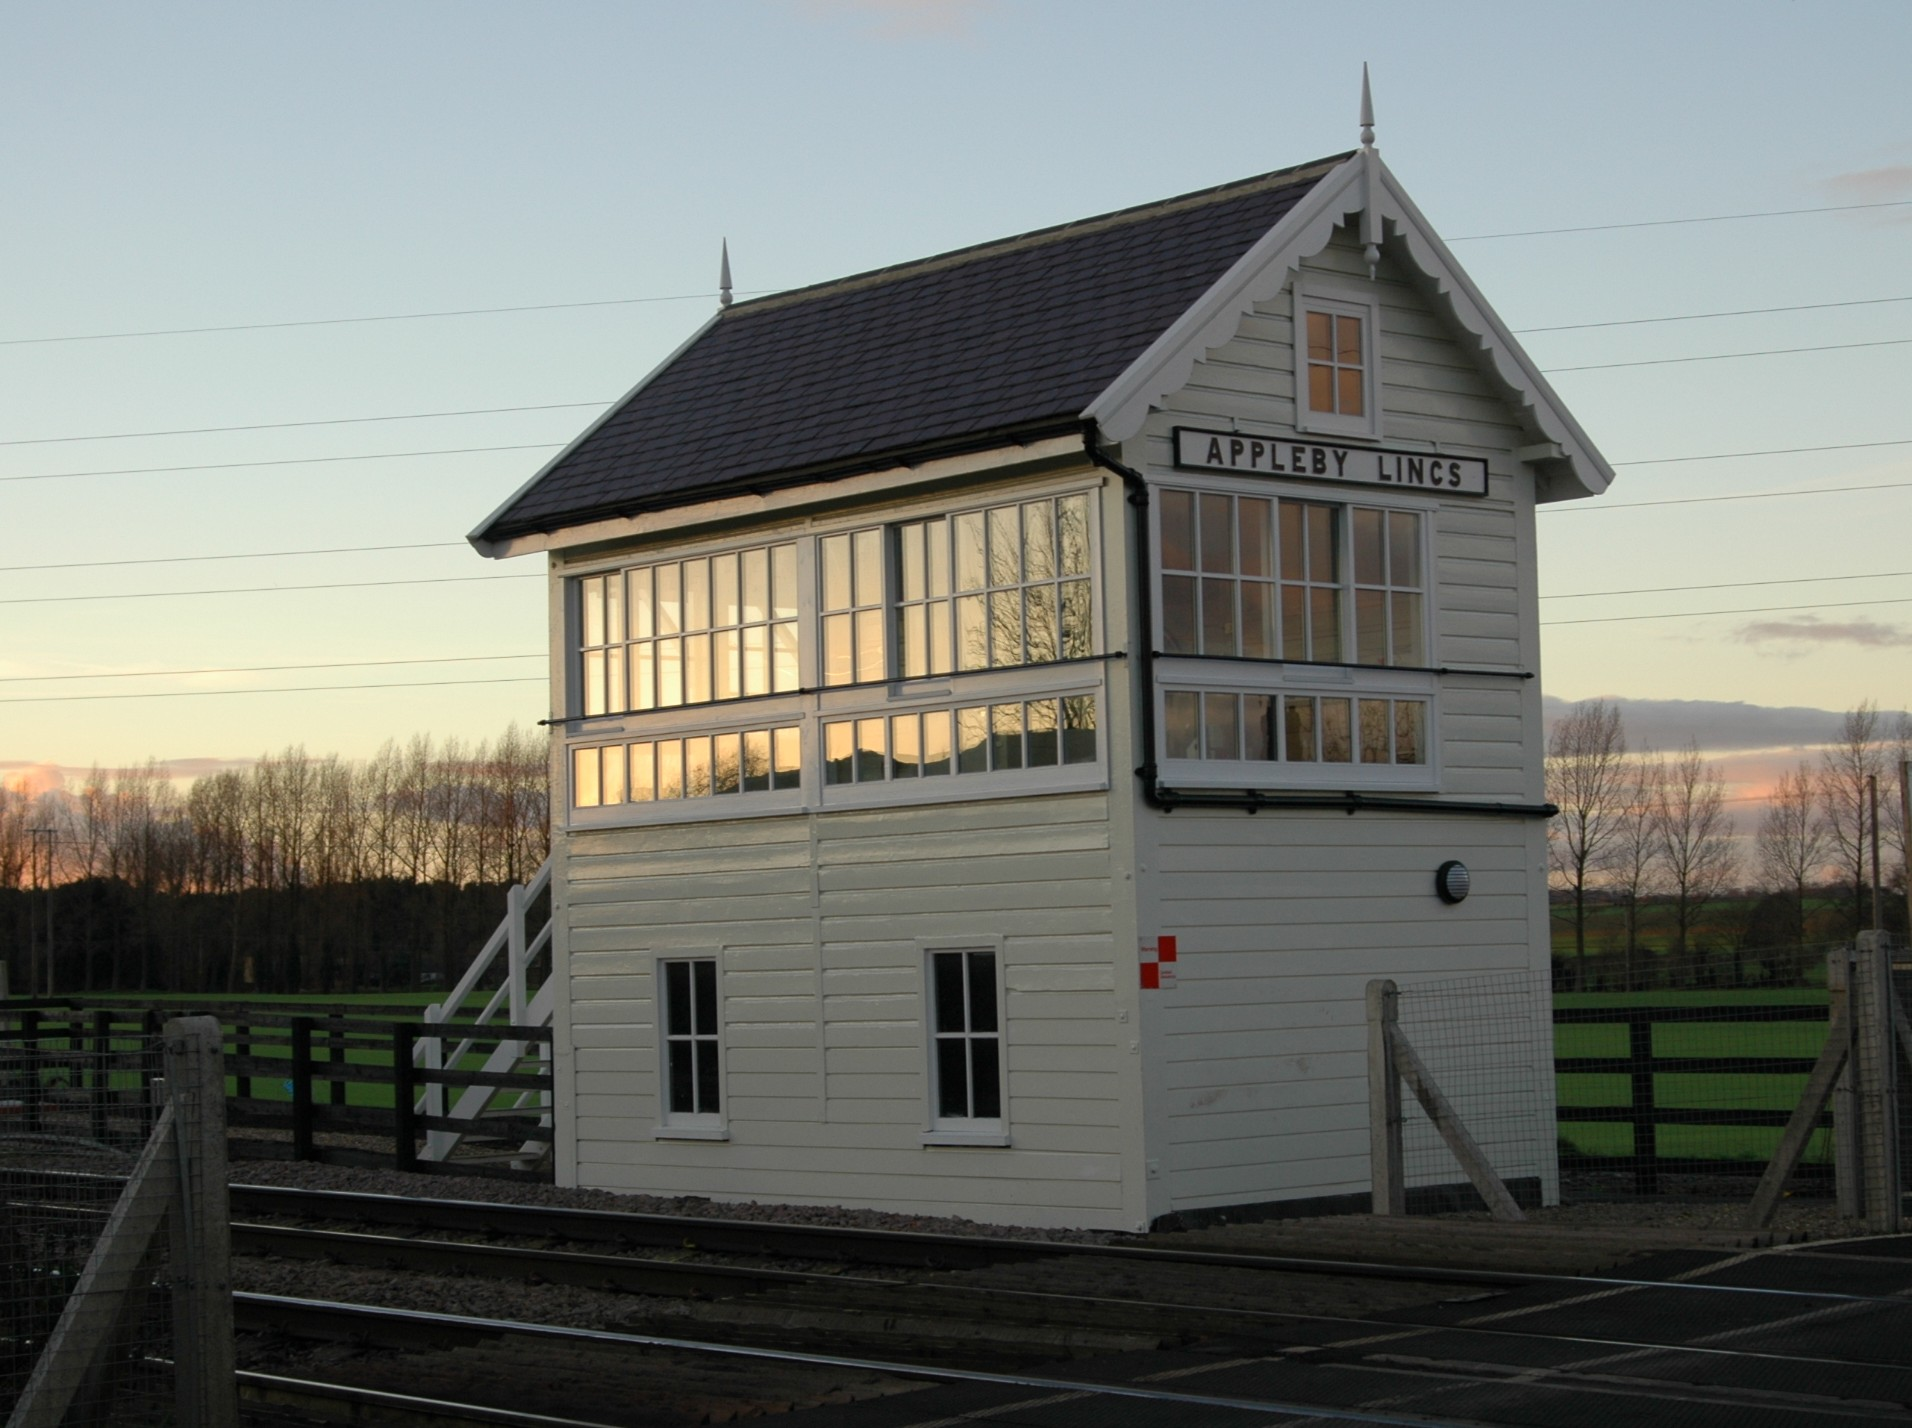 Appleby Signal Box And Station